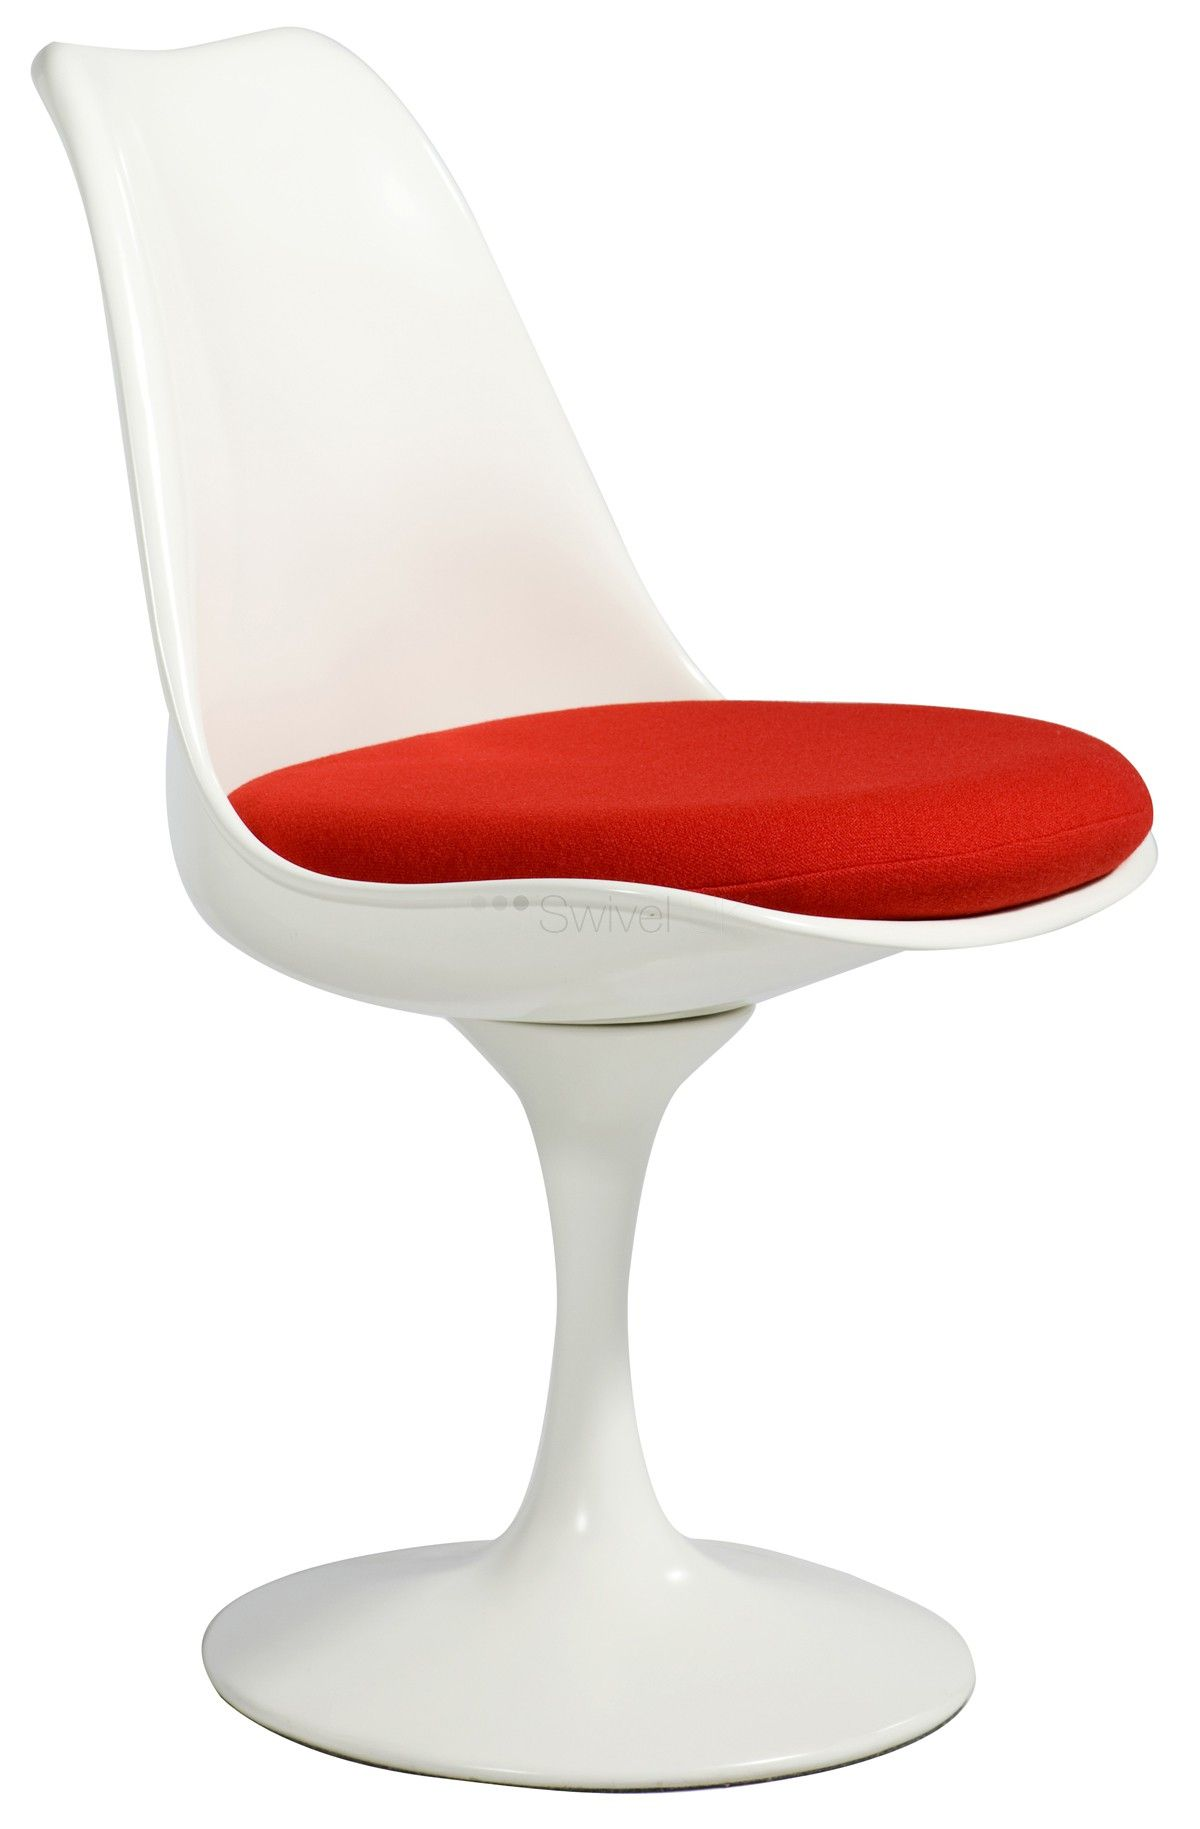 Ordinaire Eero Saarinen Style Tulip Replica Chair Fibreglass SwivelUK.com 310  1.200 ×1.829 Pixels